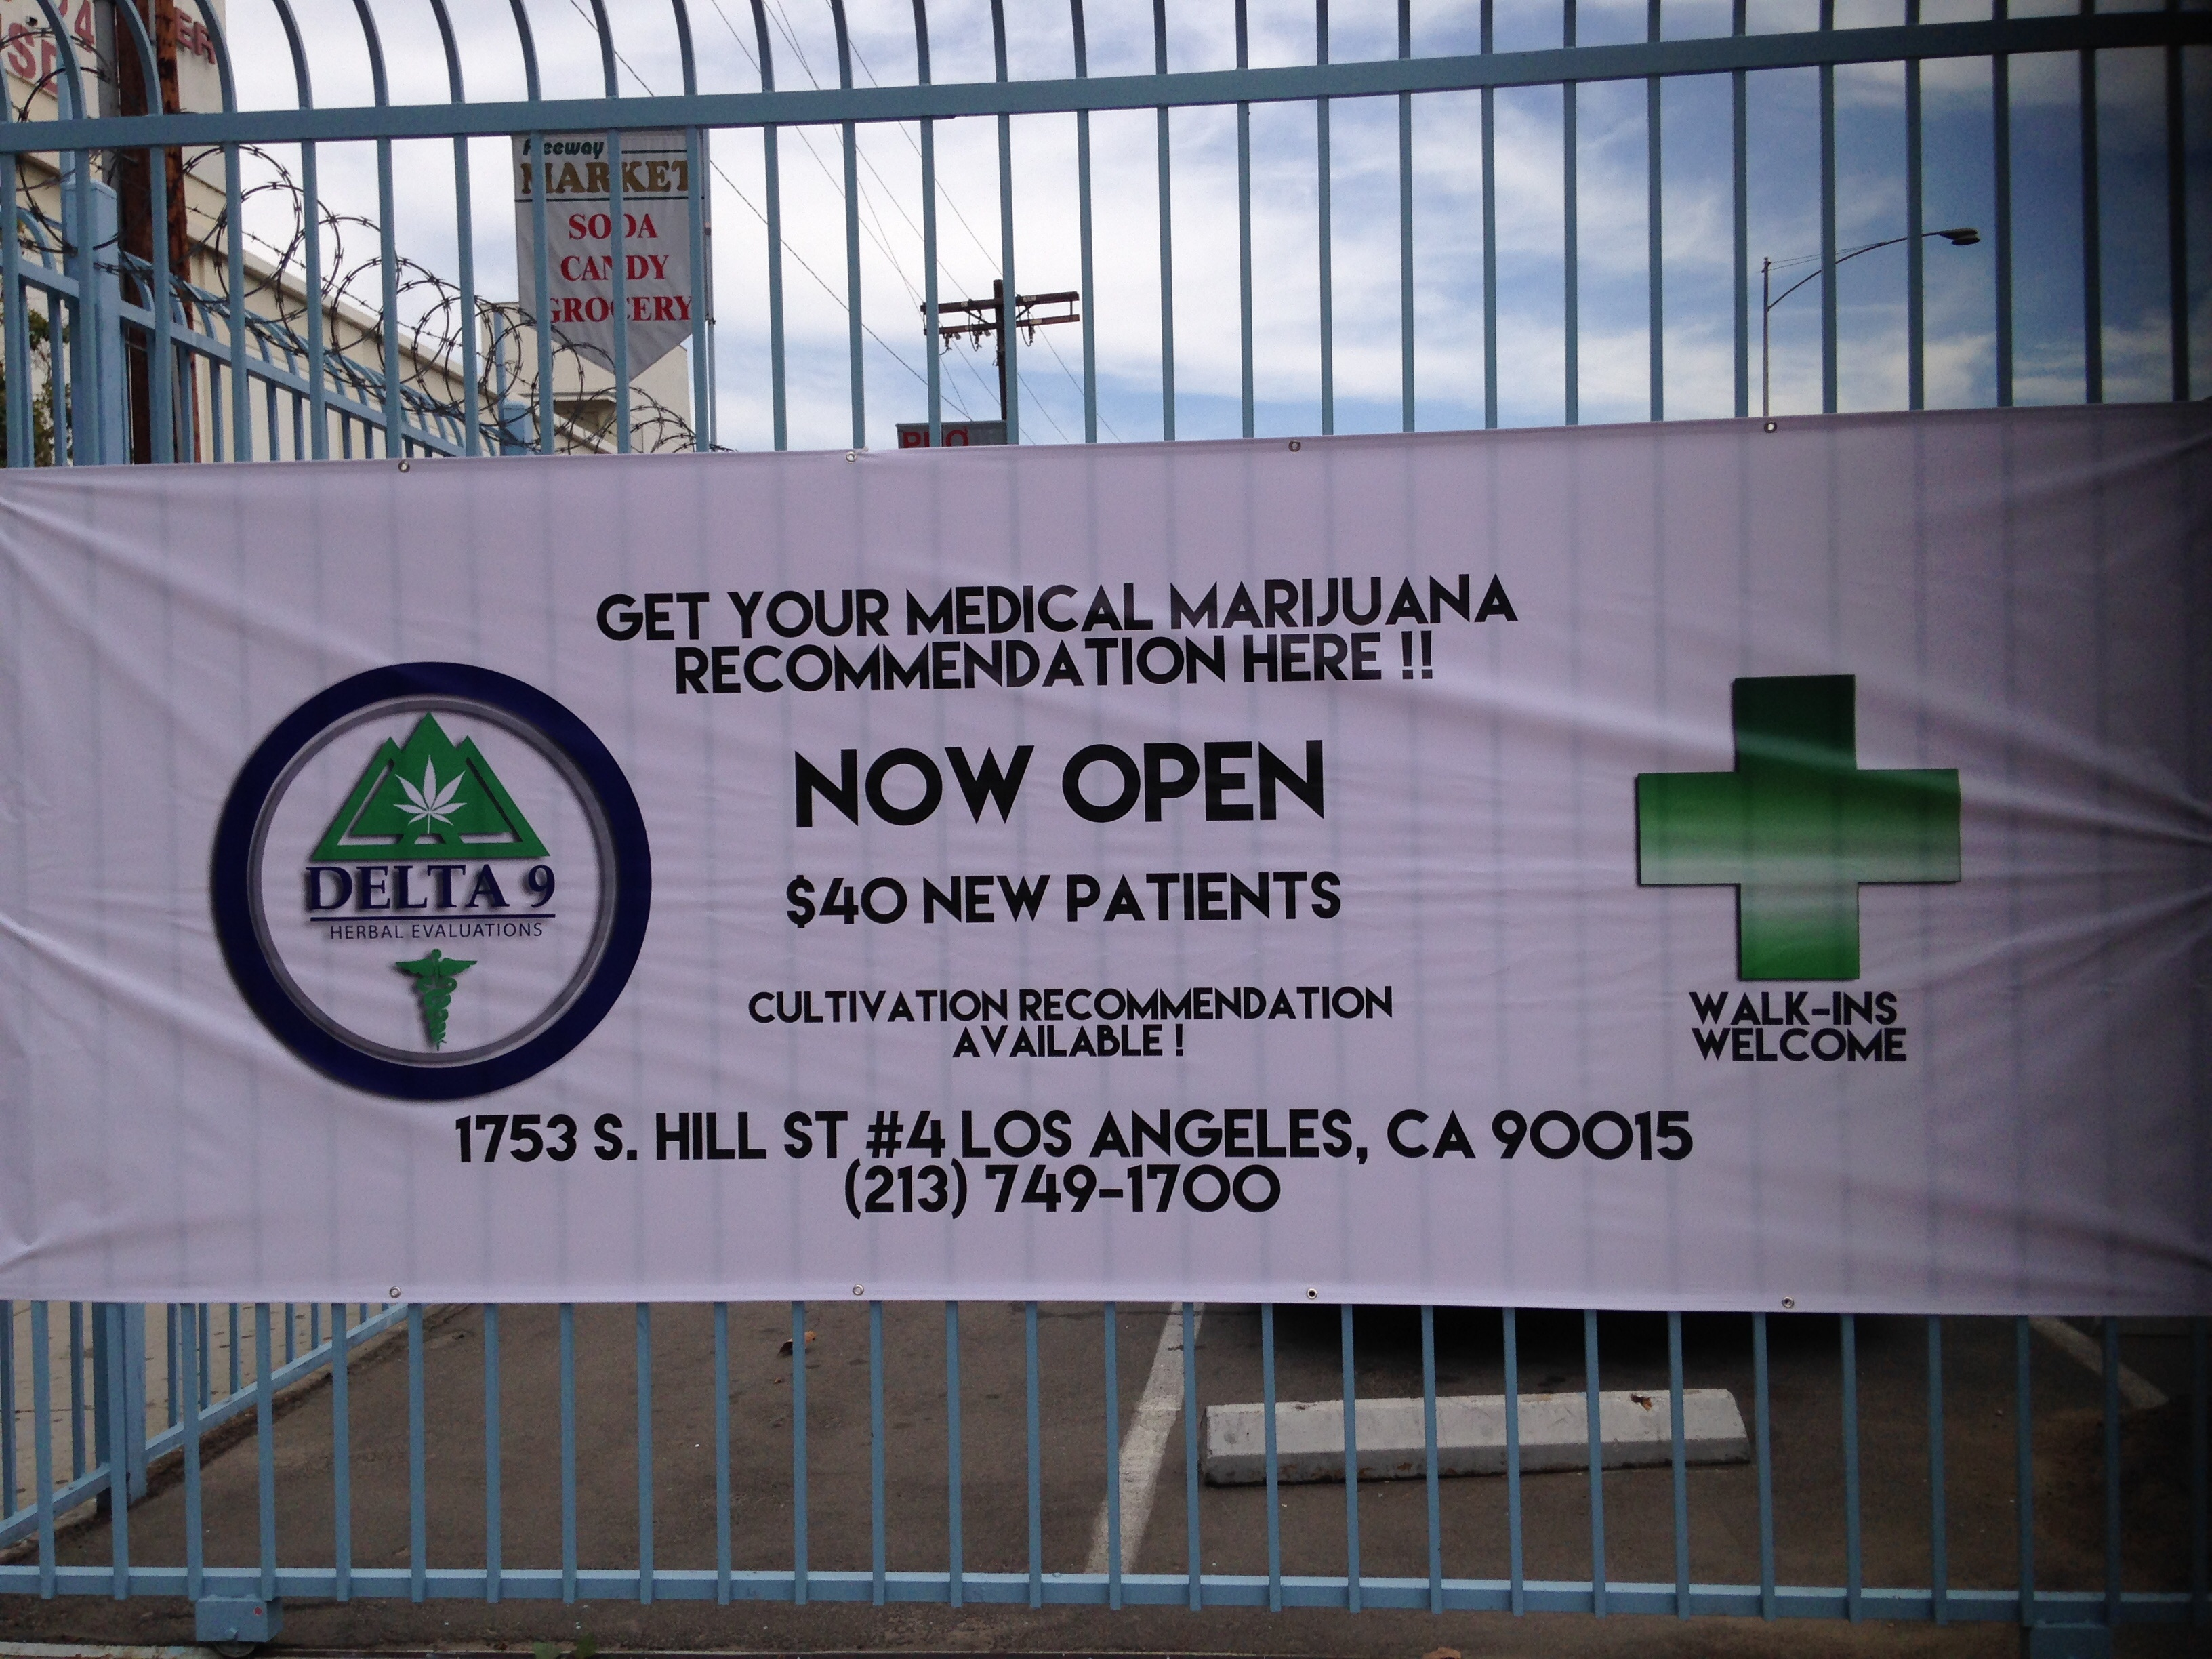 Delta 9 herbal evaluations coupons near me in los angeles